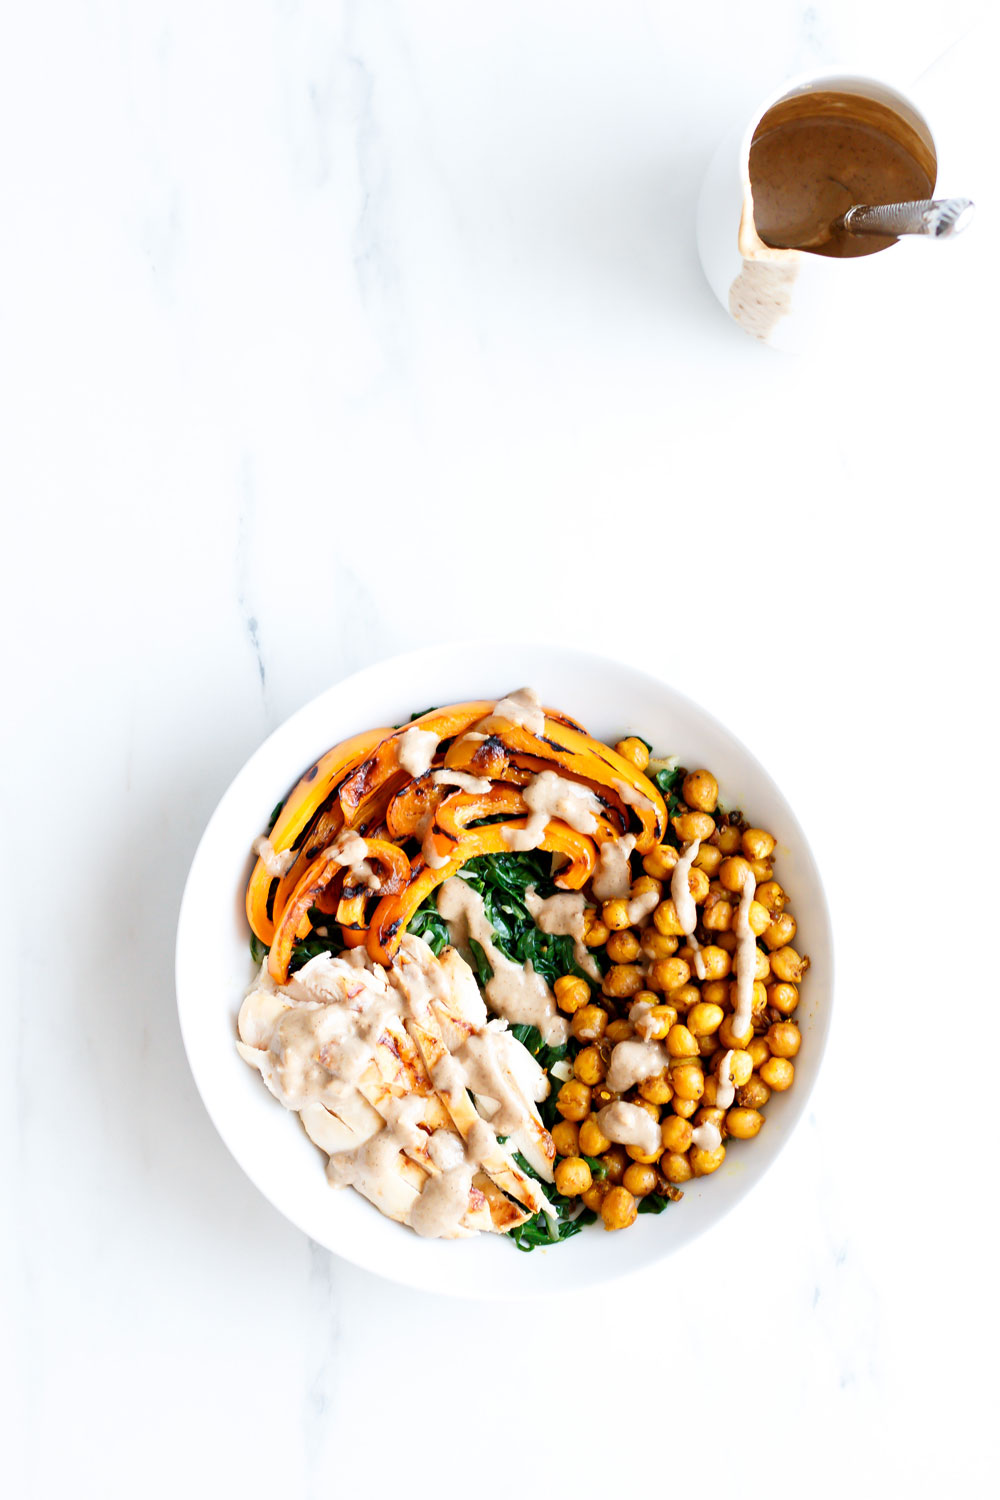 Roasted Chickpea Salad Recipe With Tahini Dressing: Healthy, well-balanced and delish! https://www.spotebi.com/recipes/roasted-chickpea-salad-recipe-with-tahini-dressing/